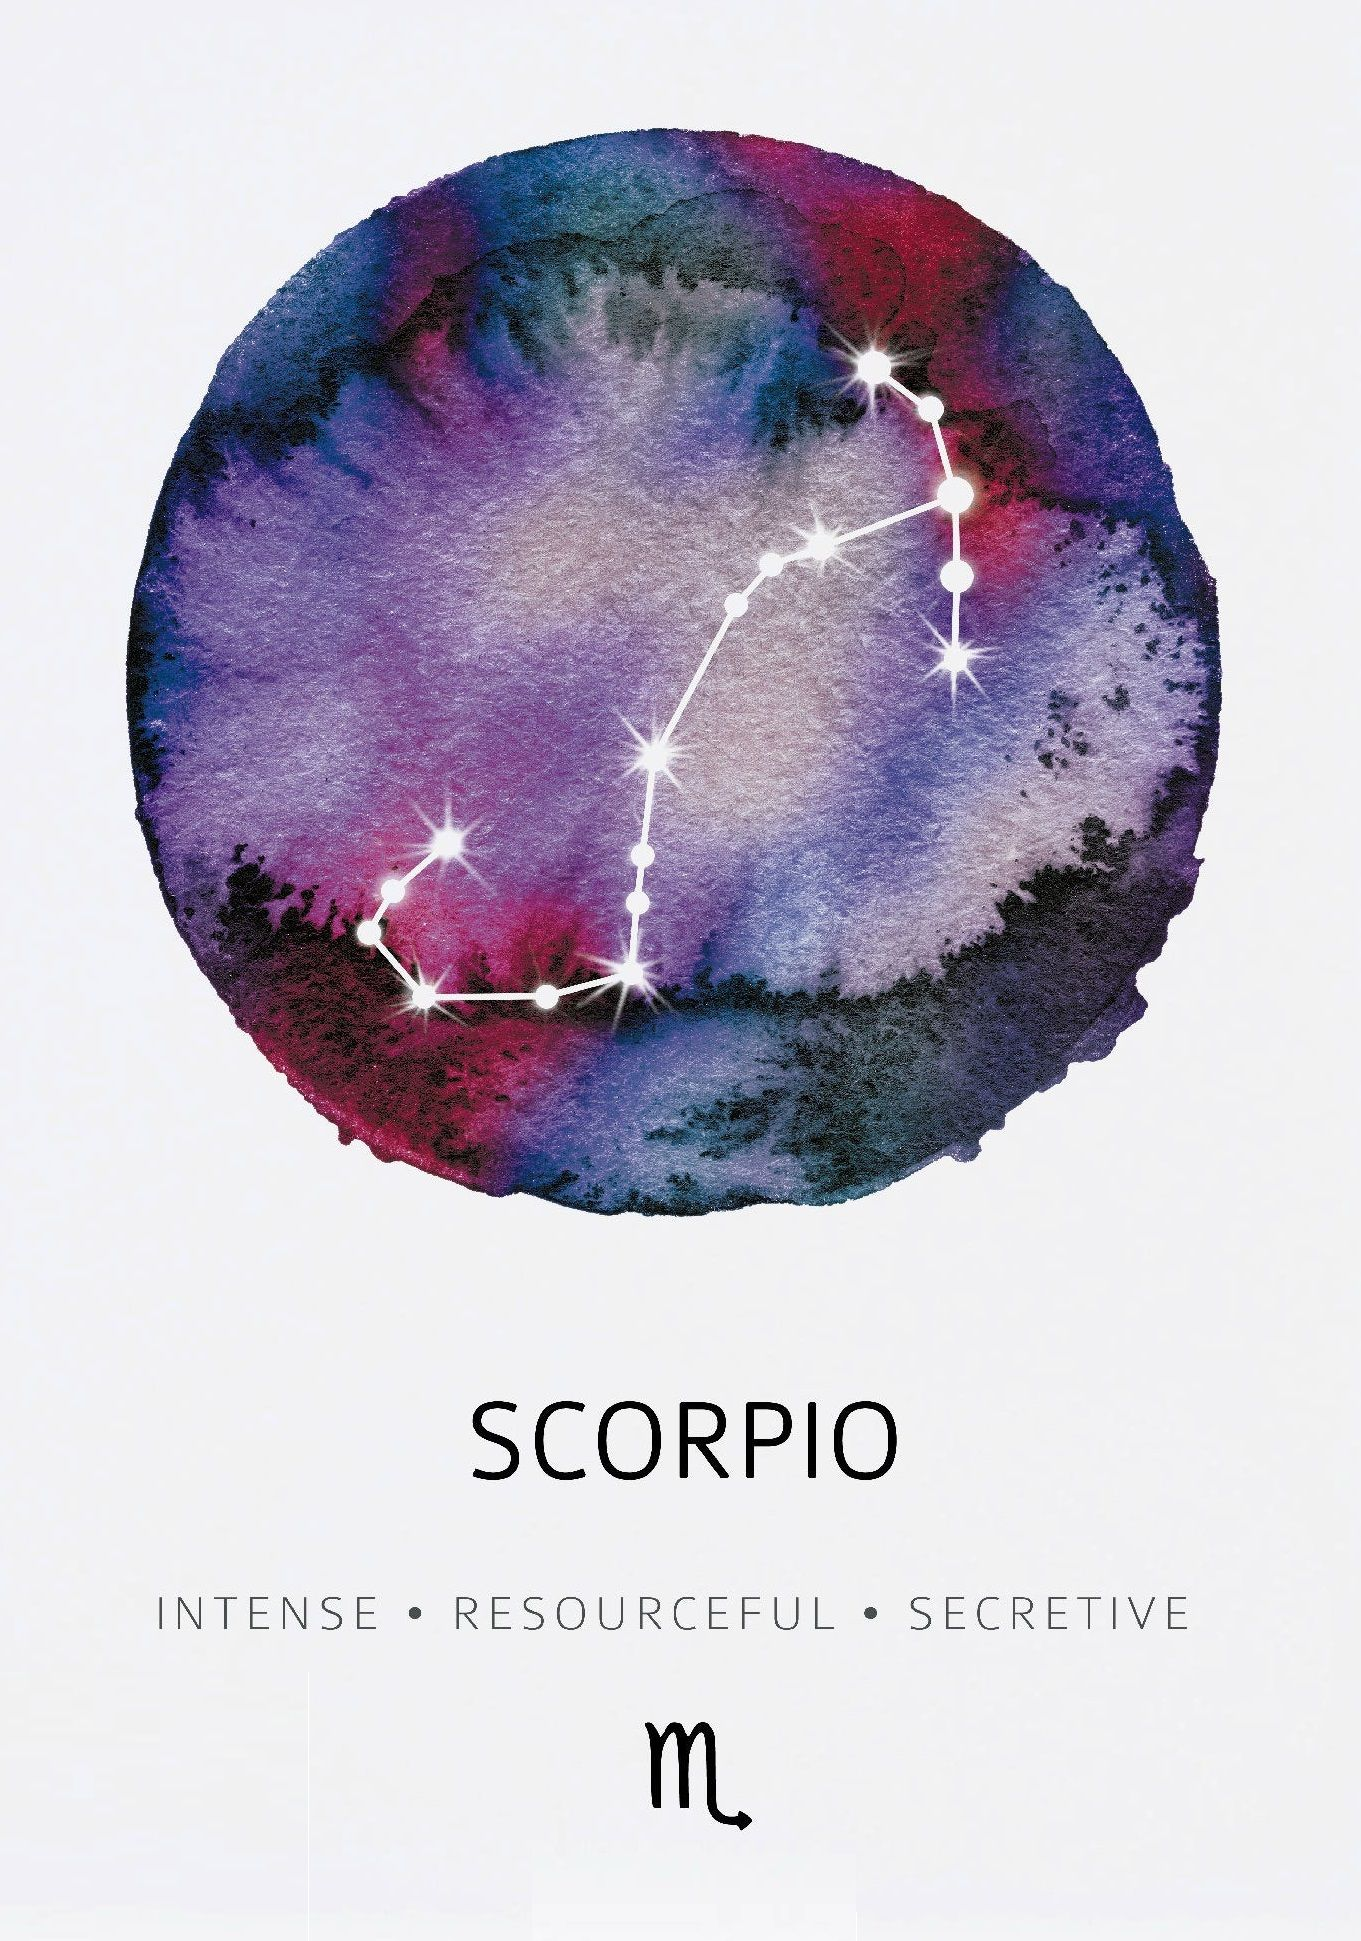 Scorpio ~ Intense, resourceful, secretive